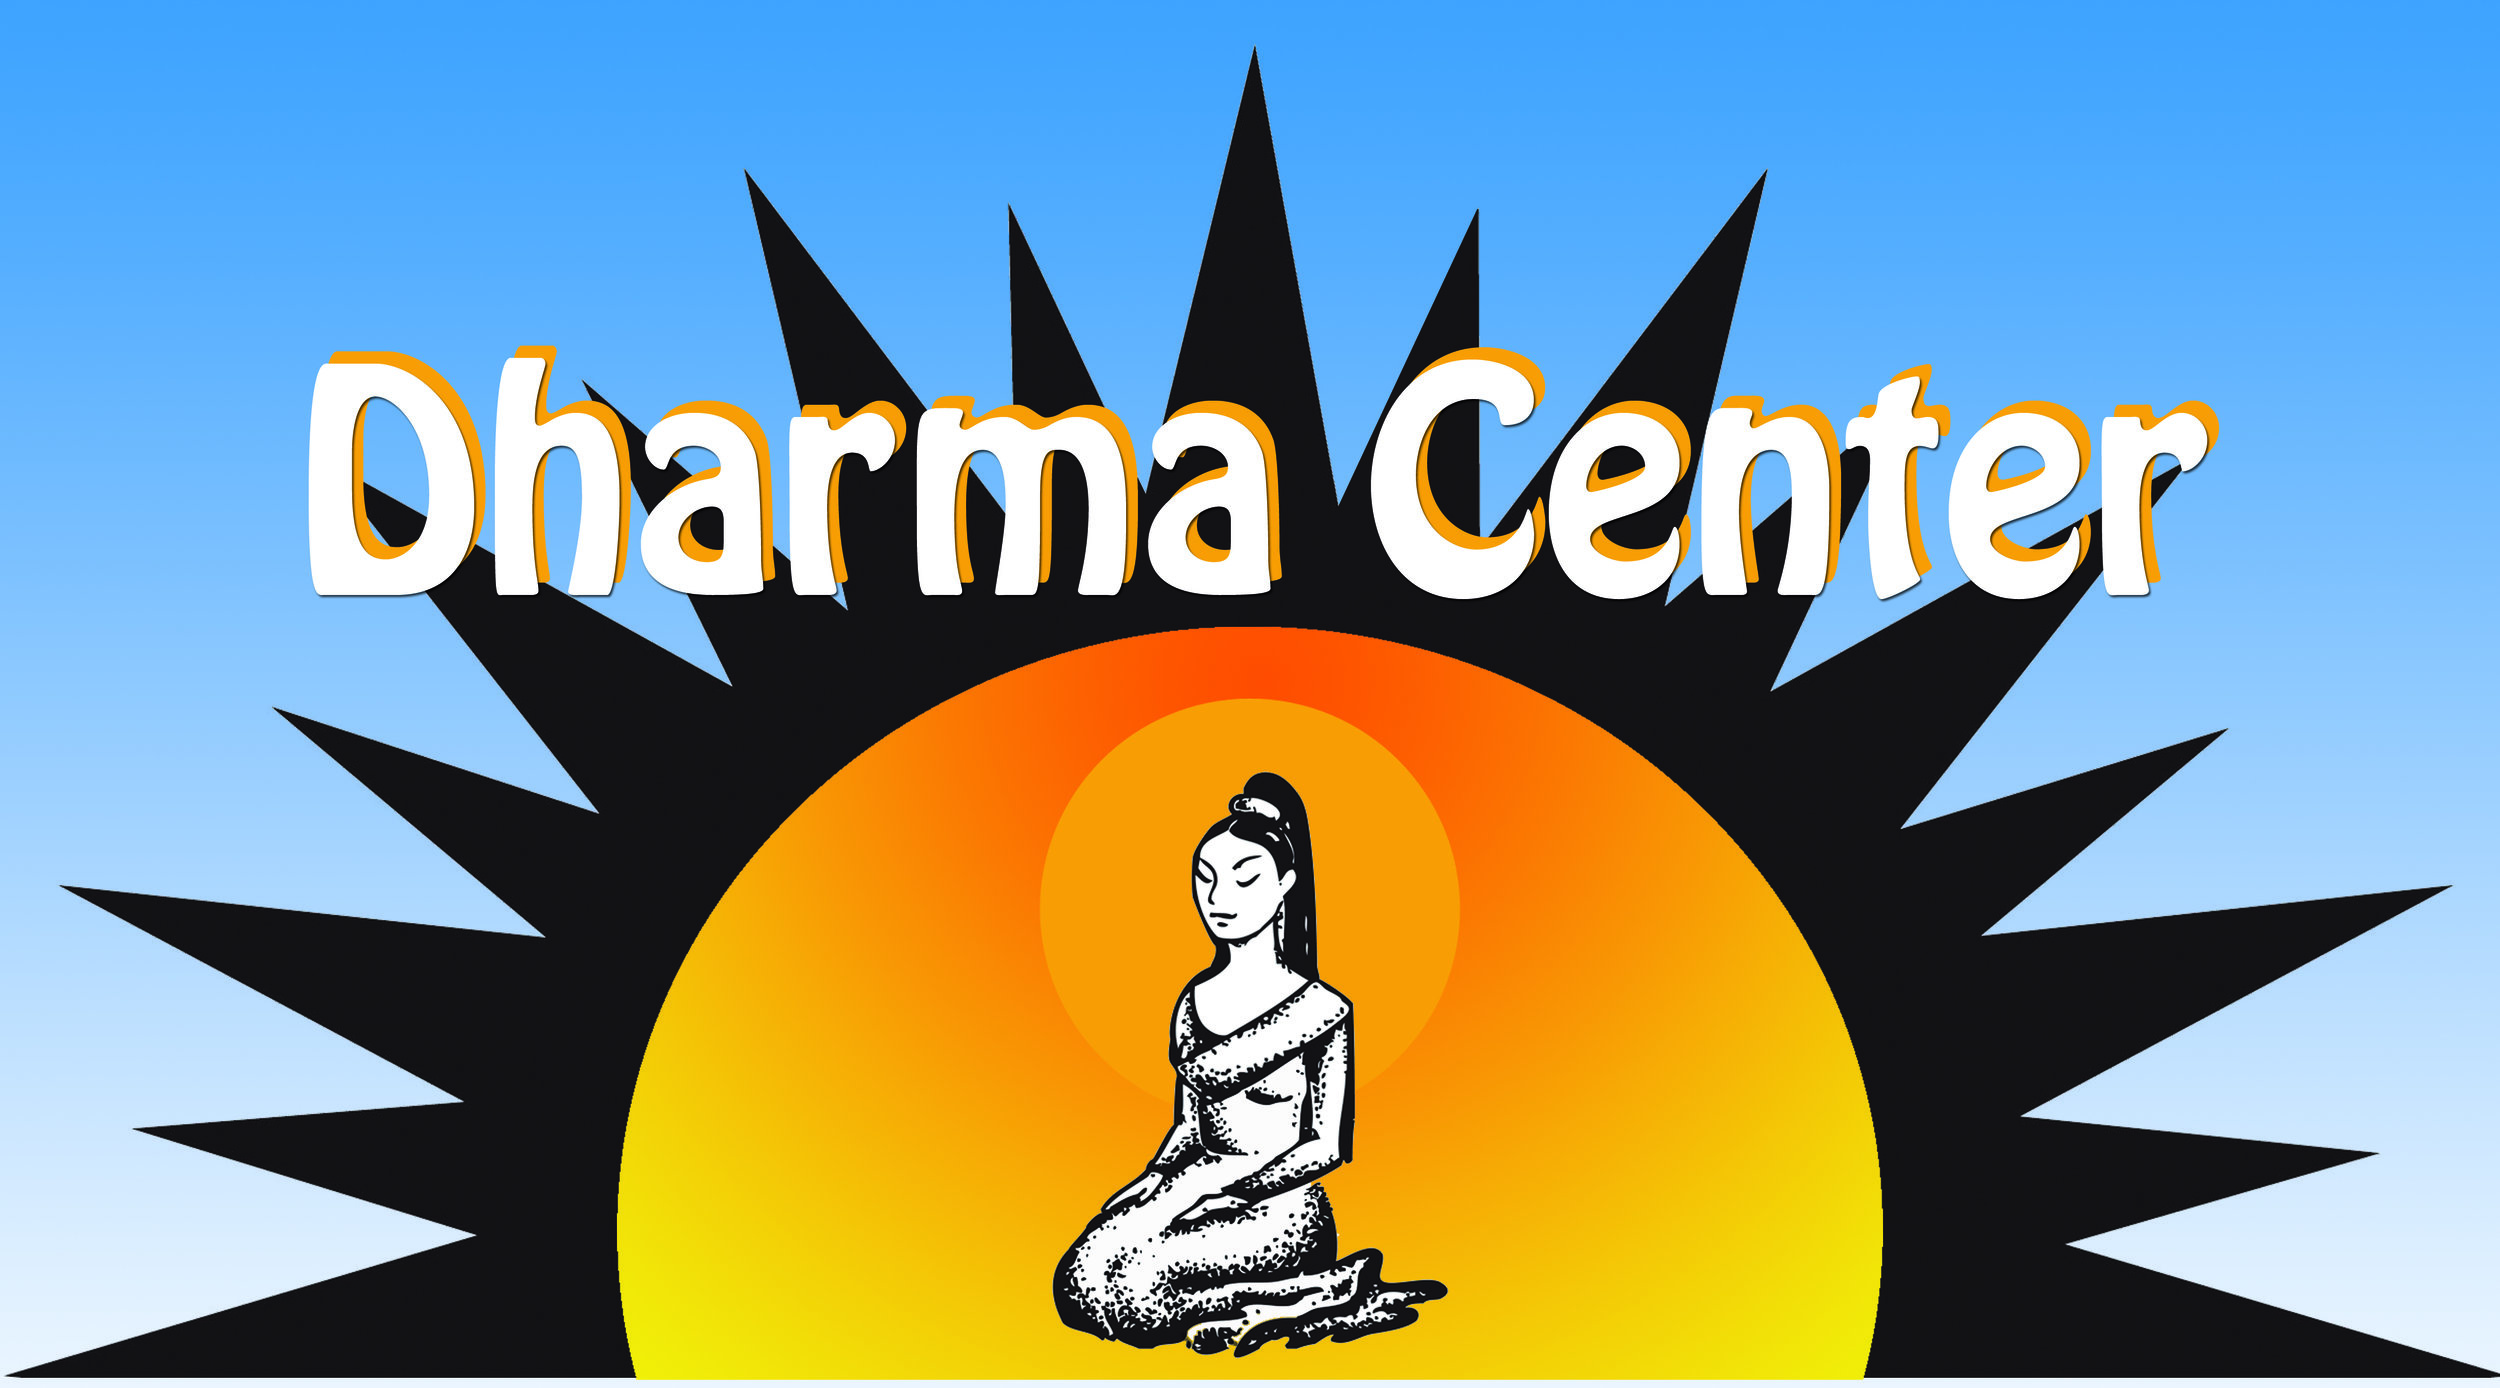 Dharma Center San Diego is a meditation center that offers meditation and mindfulness classes with various teachers that offer powerful techniques to build and create a bright and happy life with Q&A sessions to help answer questions in American Buddhism, Enlightenment, Self-Discovery, Dharma, Mindfulness, Meditation, and Spirituality.